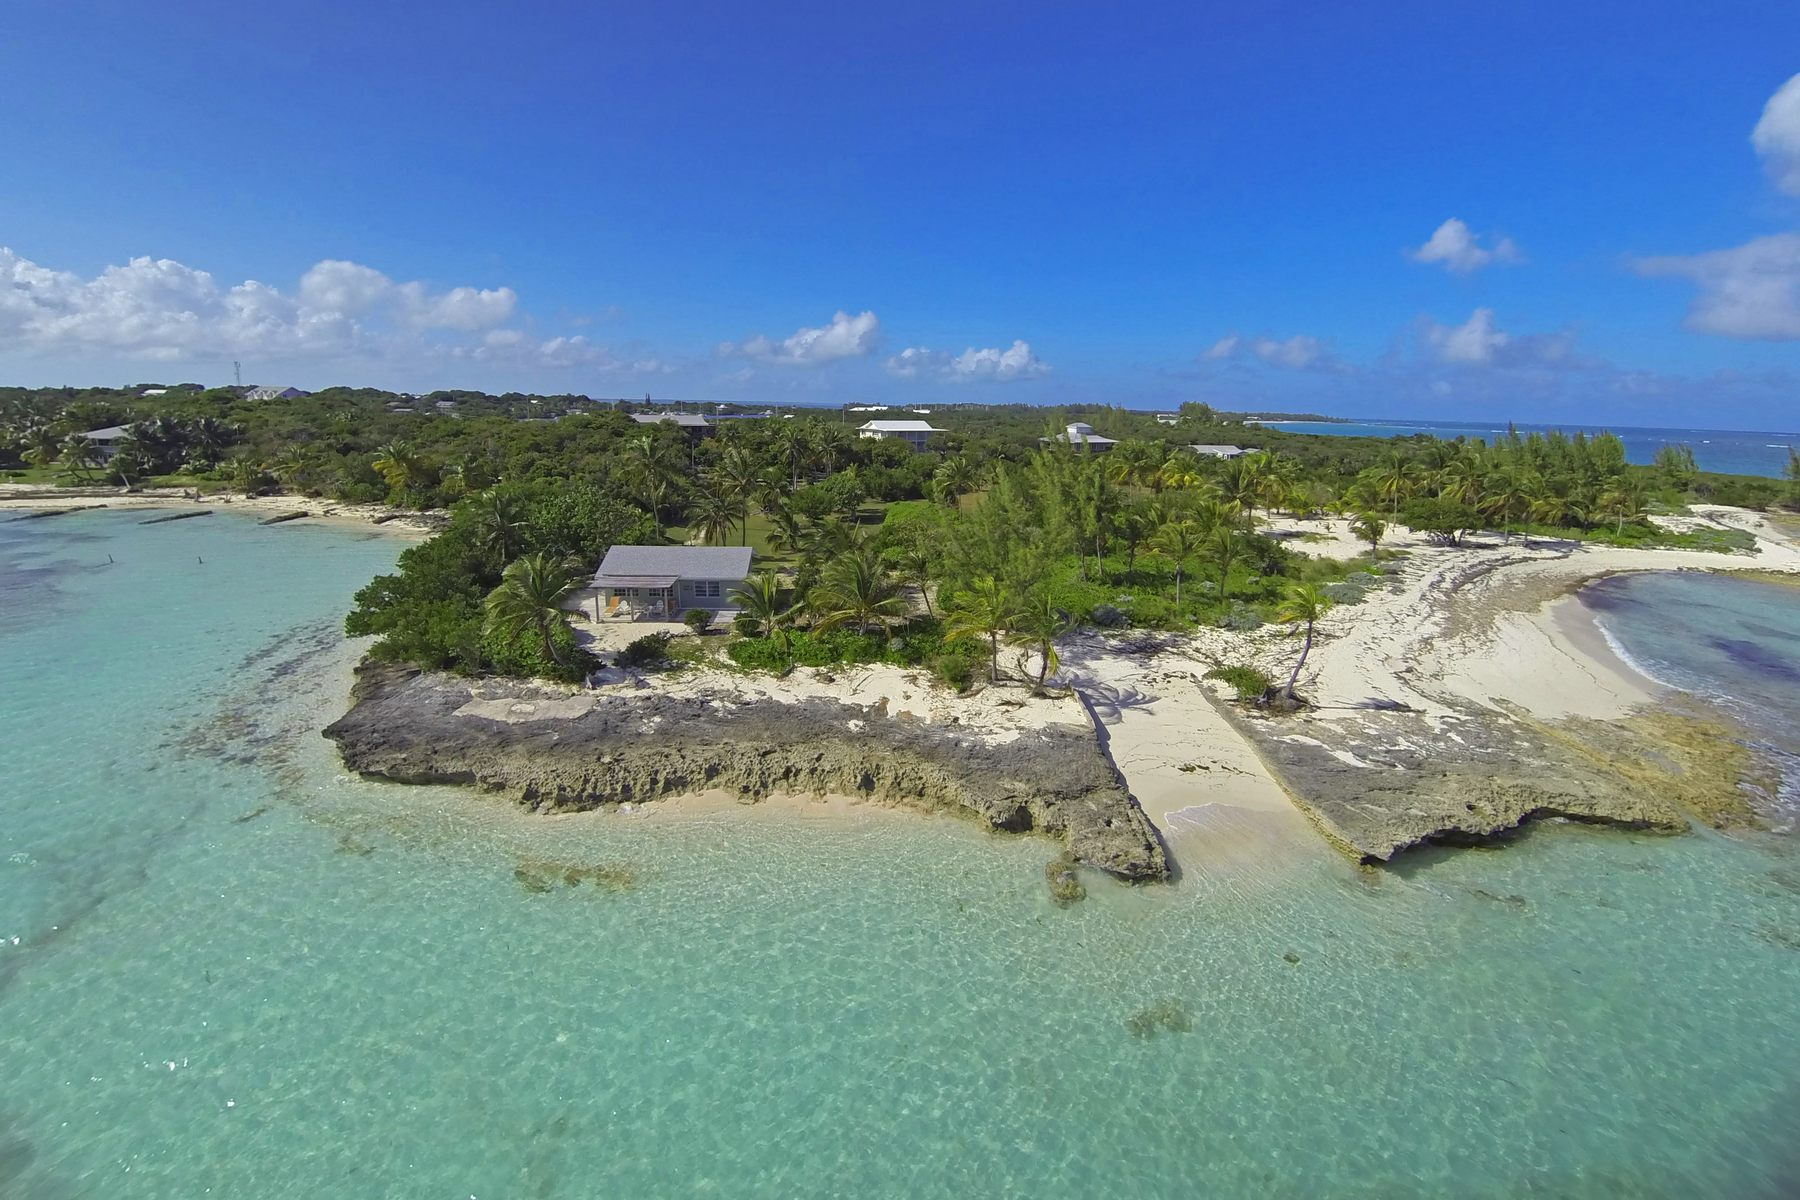 Single Family Home for Sale at Swanson Landing Black Sound, Green Turtle Cay, Abaco Bahamas